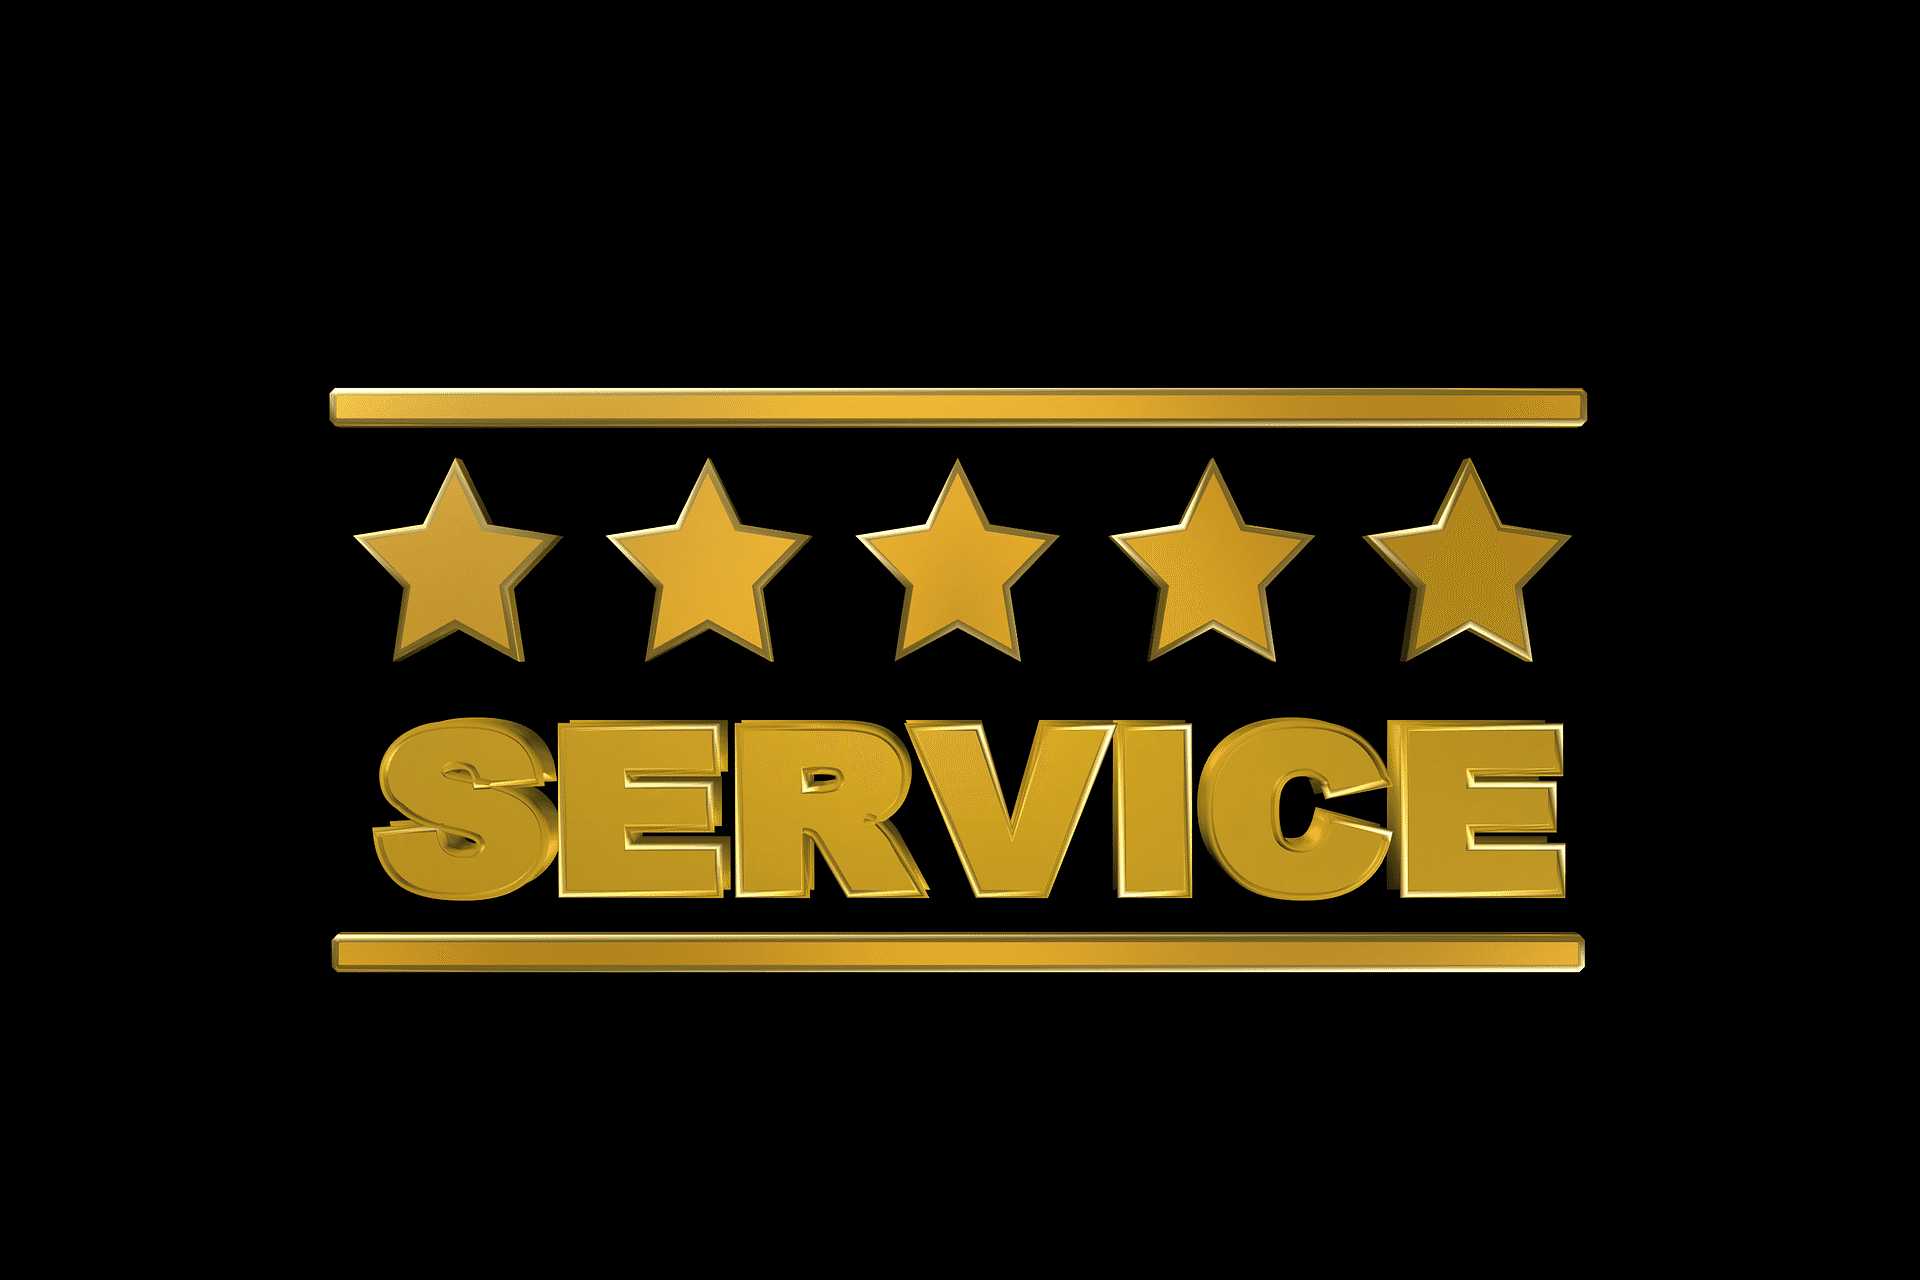 service, 5 star service, quality, rating, ranking, star